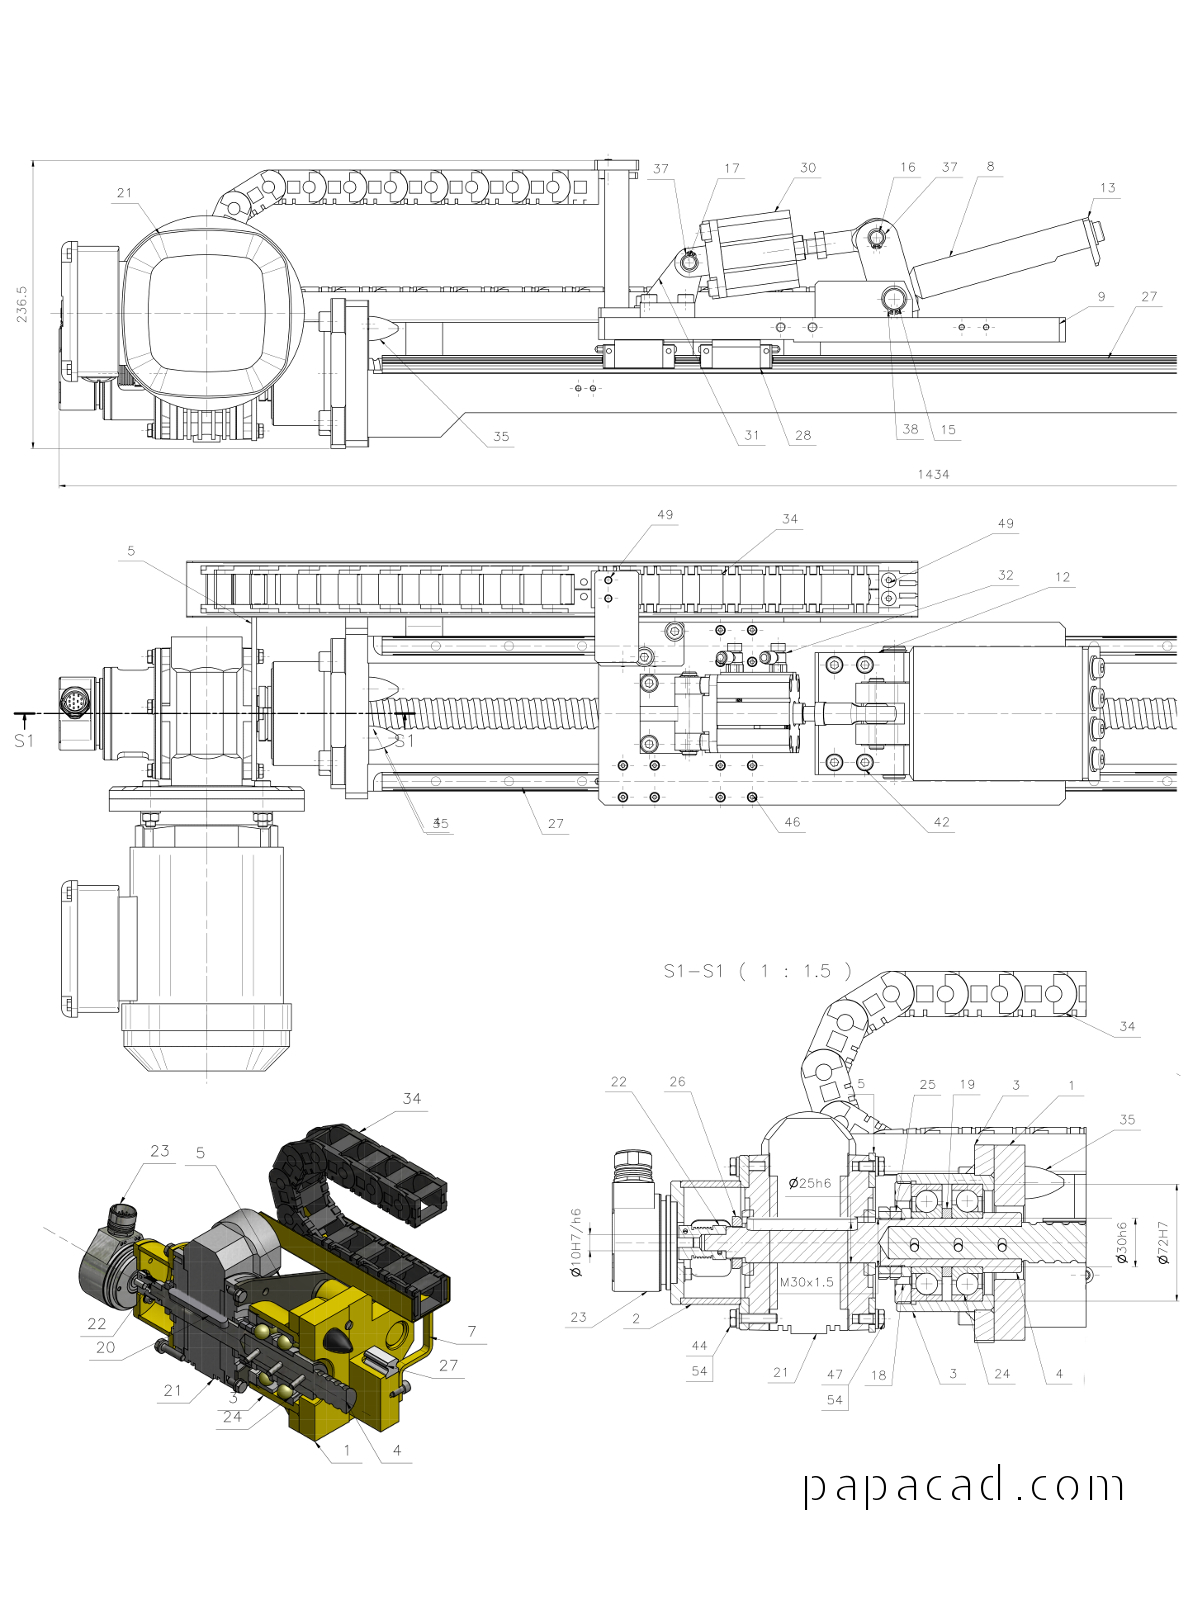 Ball Screw Engine - CAD project download engineering drawings